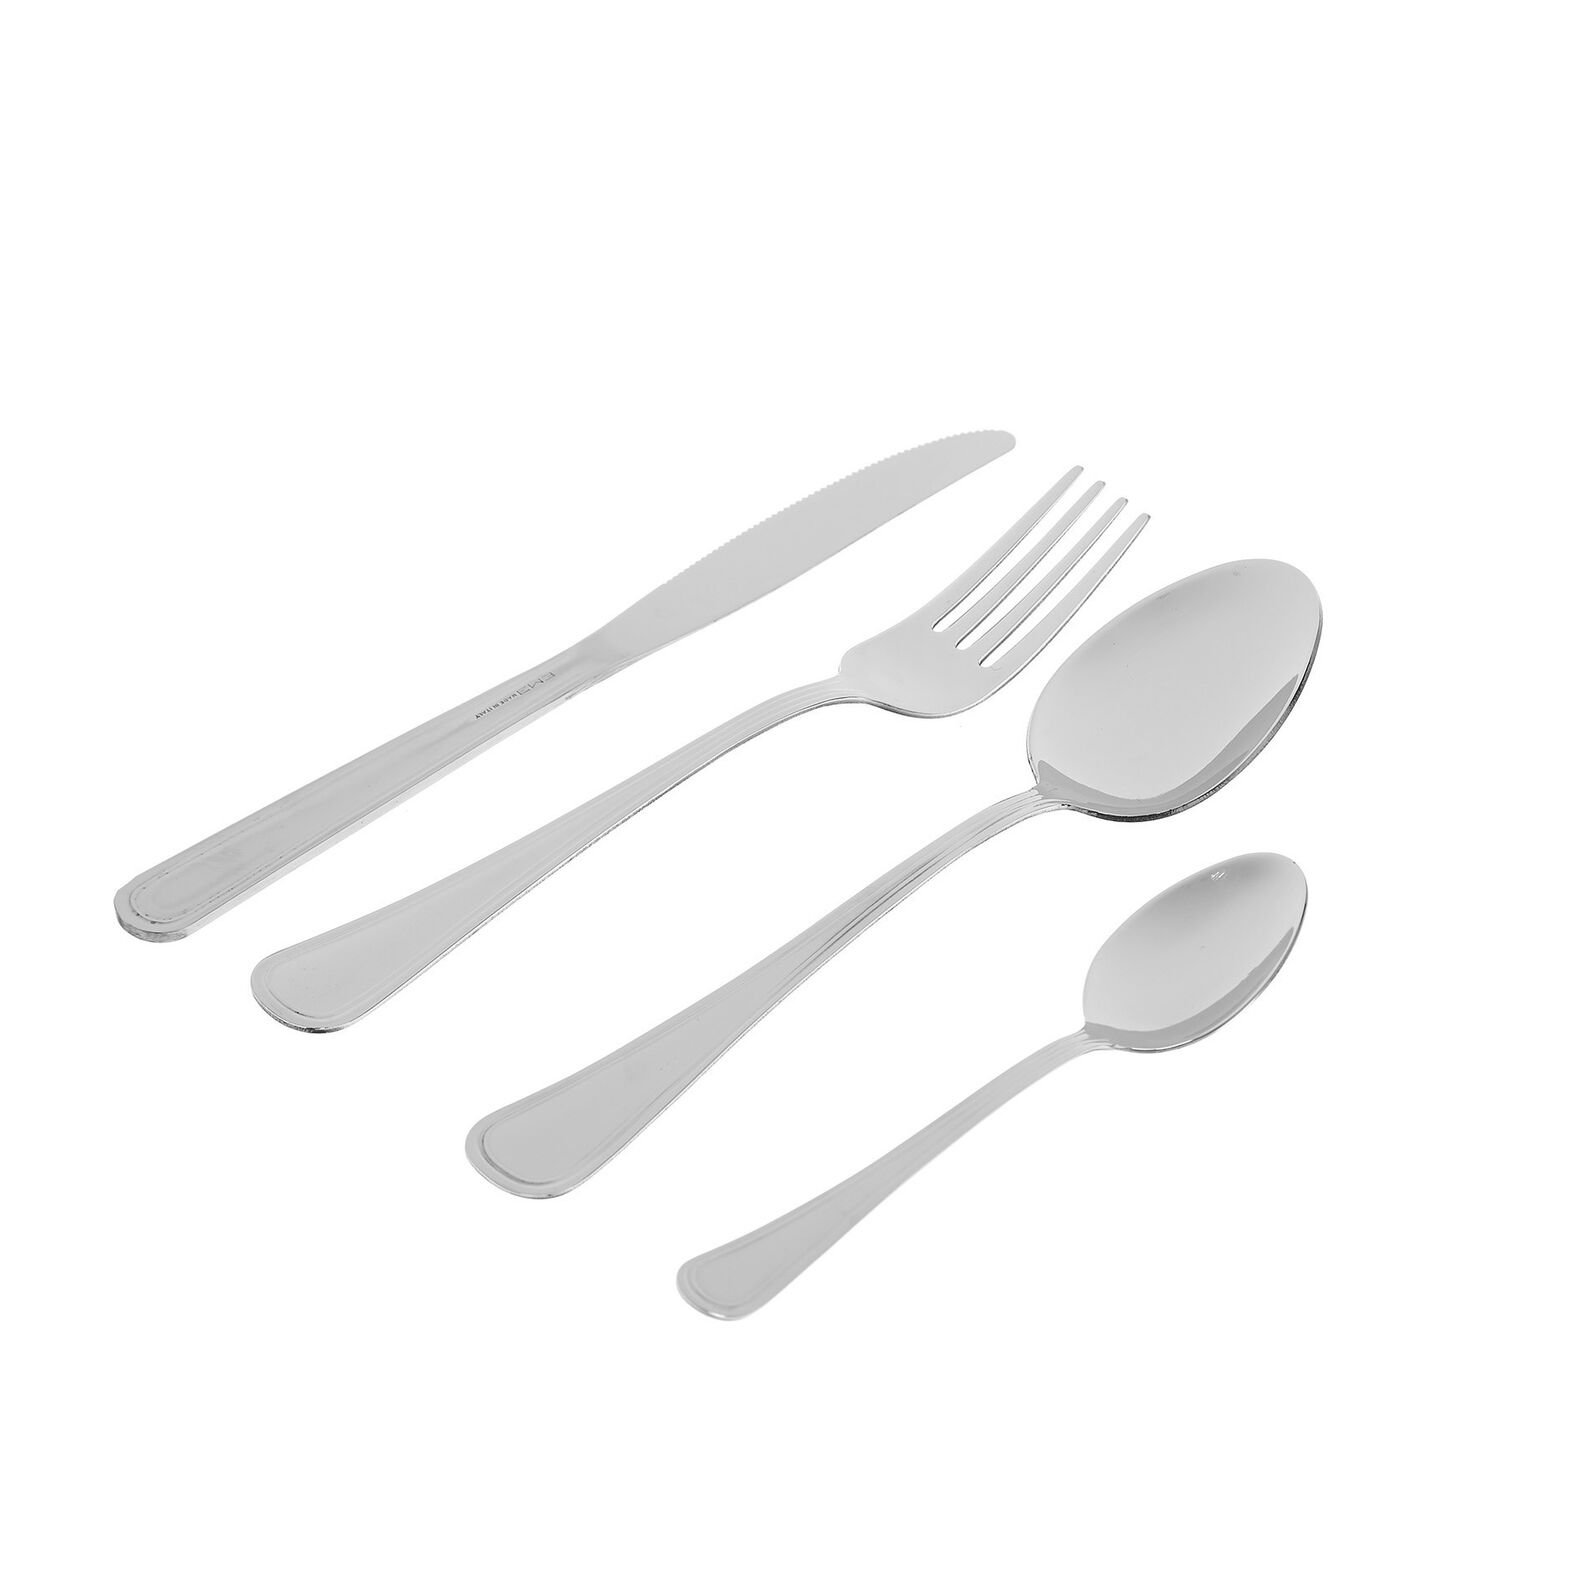 24-piece Galles cutlery set in stainless steel